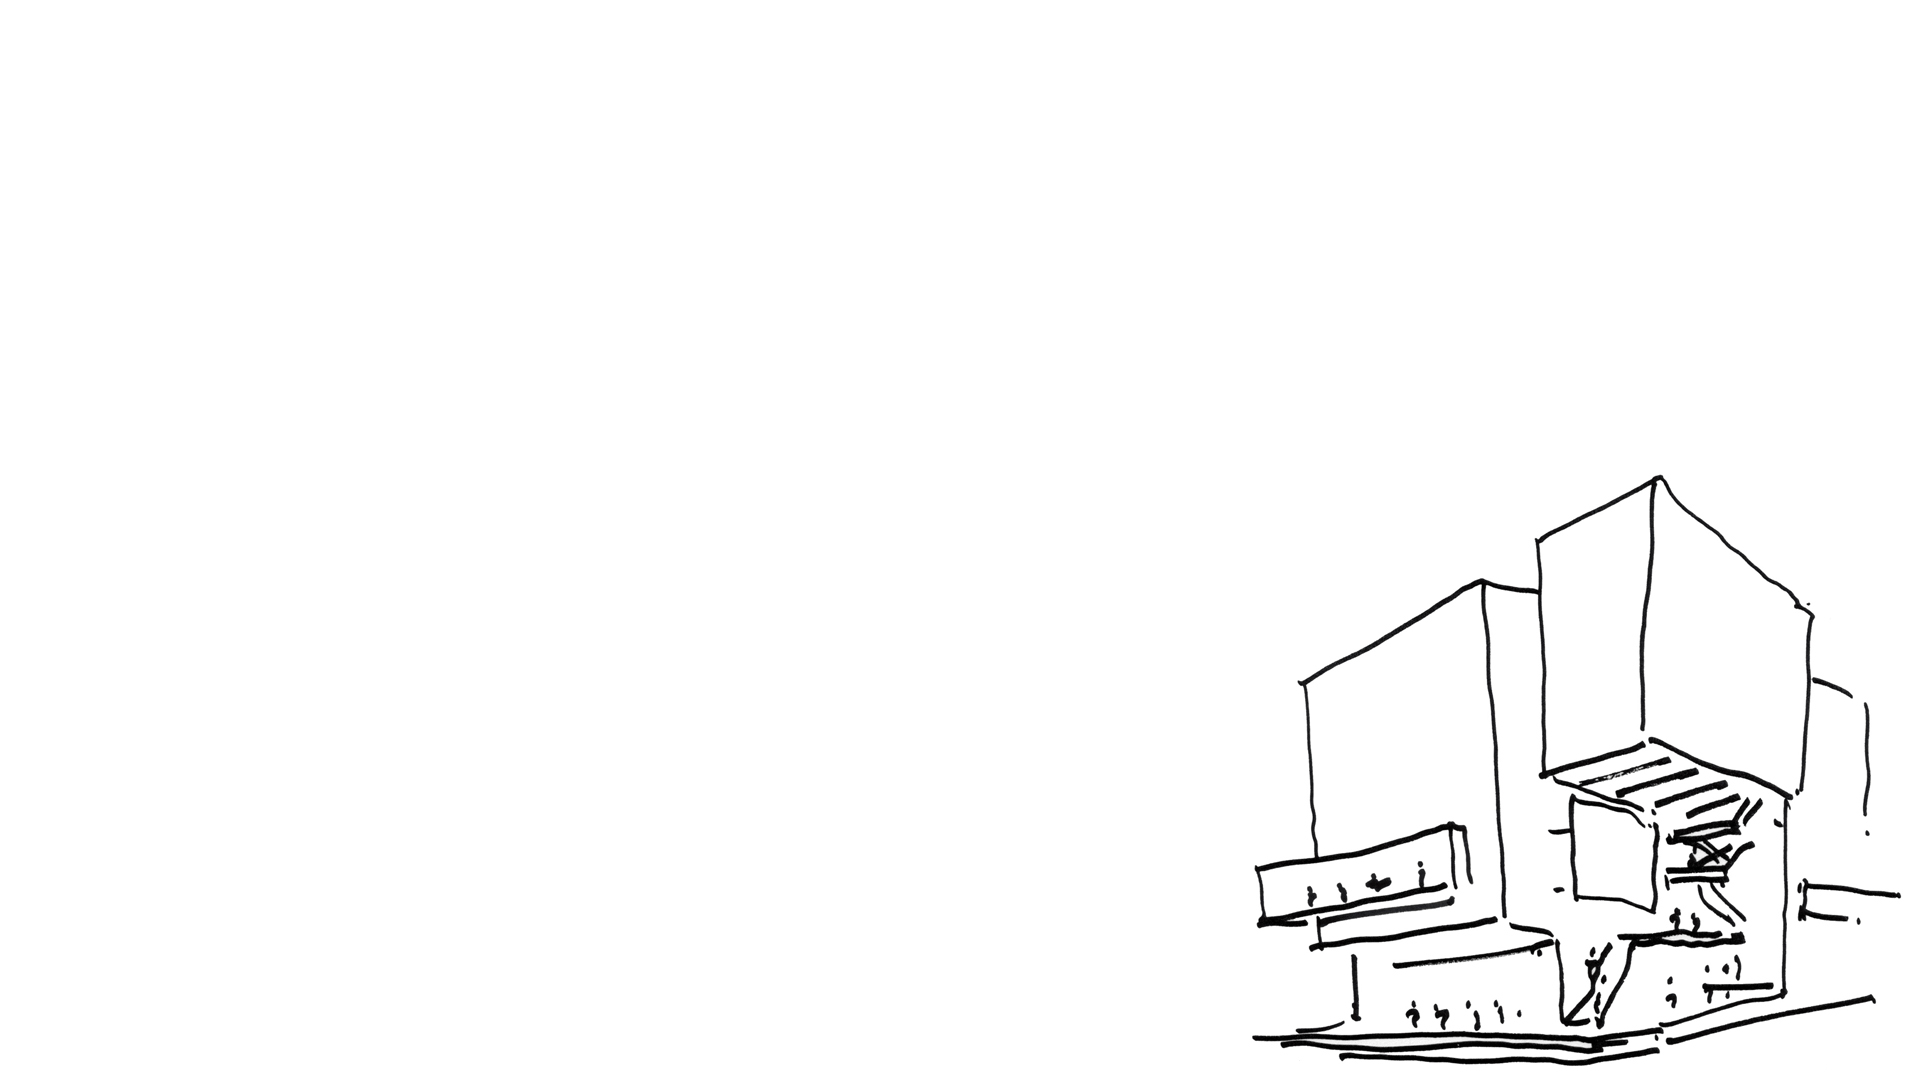 Keith Williams' Concept Sketch of the Unicorn Theatre's massing showing the main stair and the principal forms